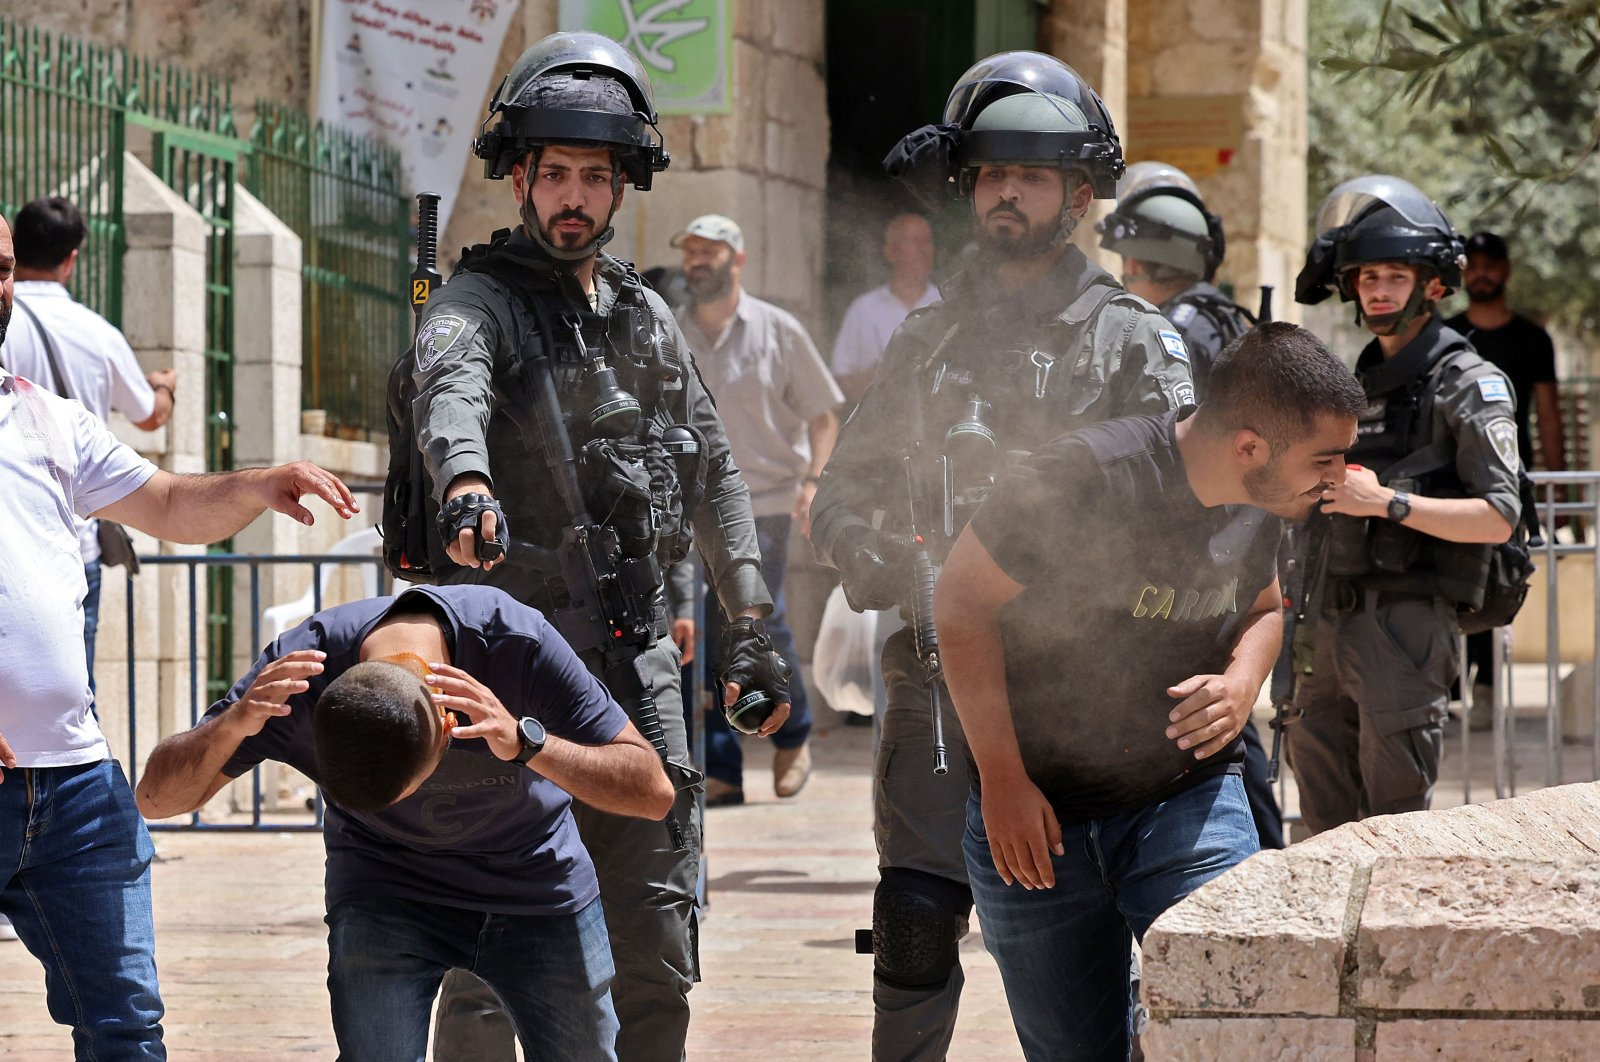 Israeli security forces spray Palestinian protesters in Jerusalem's Old City on May 10, 2021, as a planned march marking Israel's 1967 takeover of the holy city threatened to further inflame tensions. (AFP Photo)